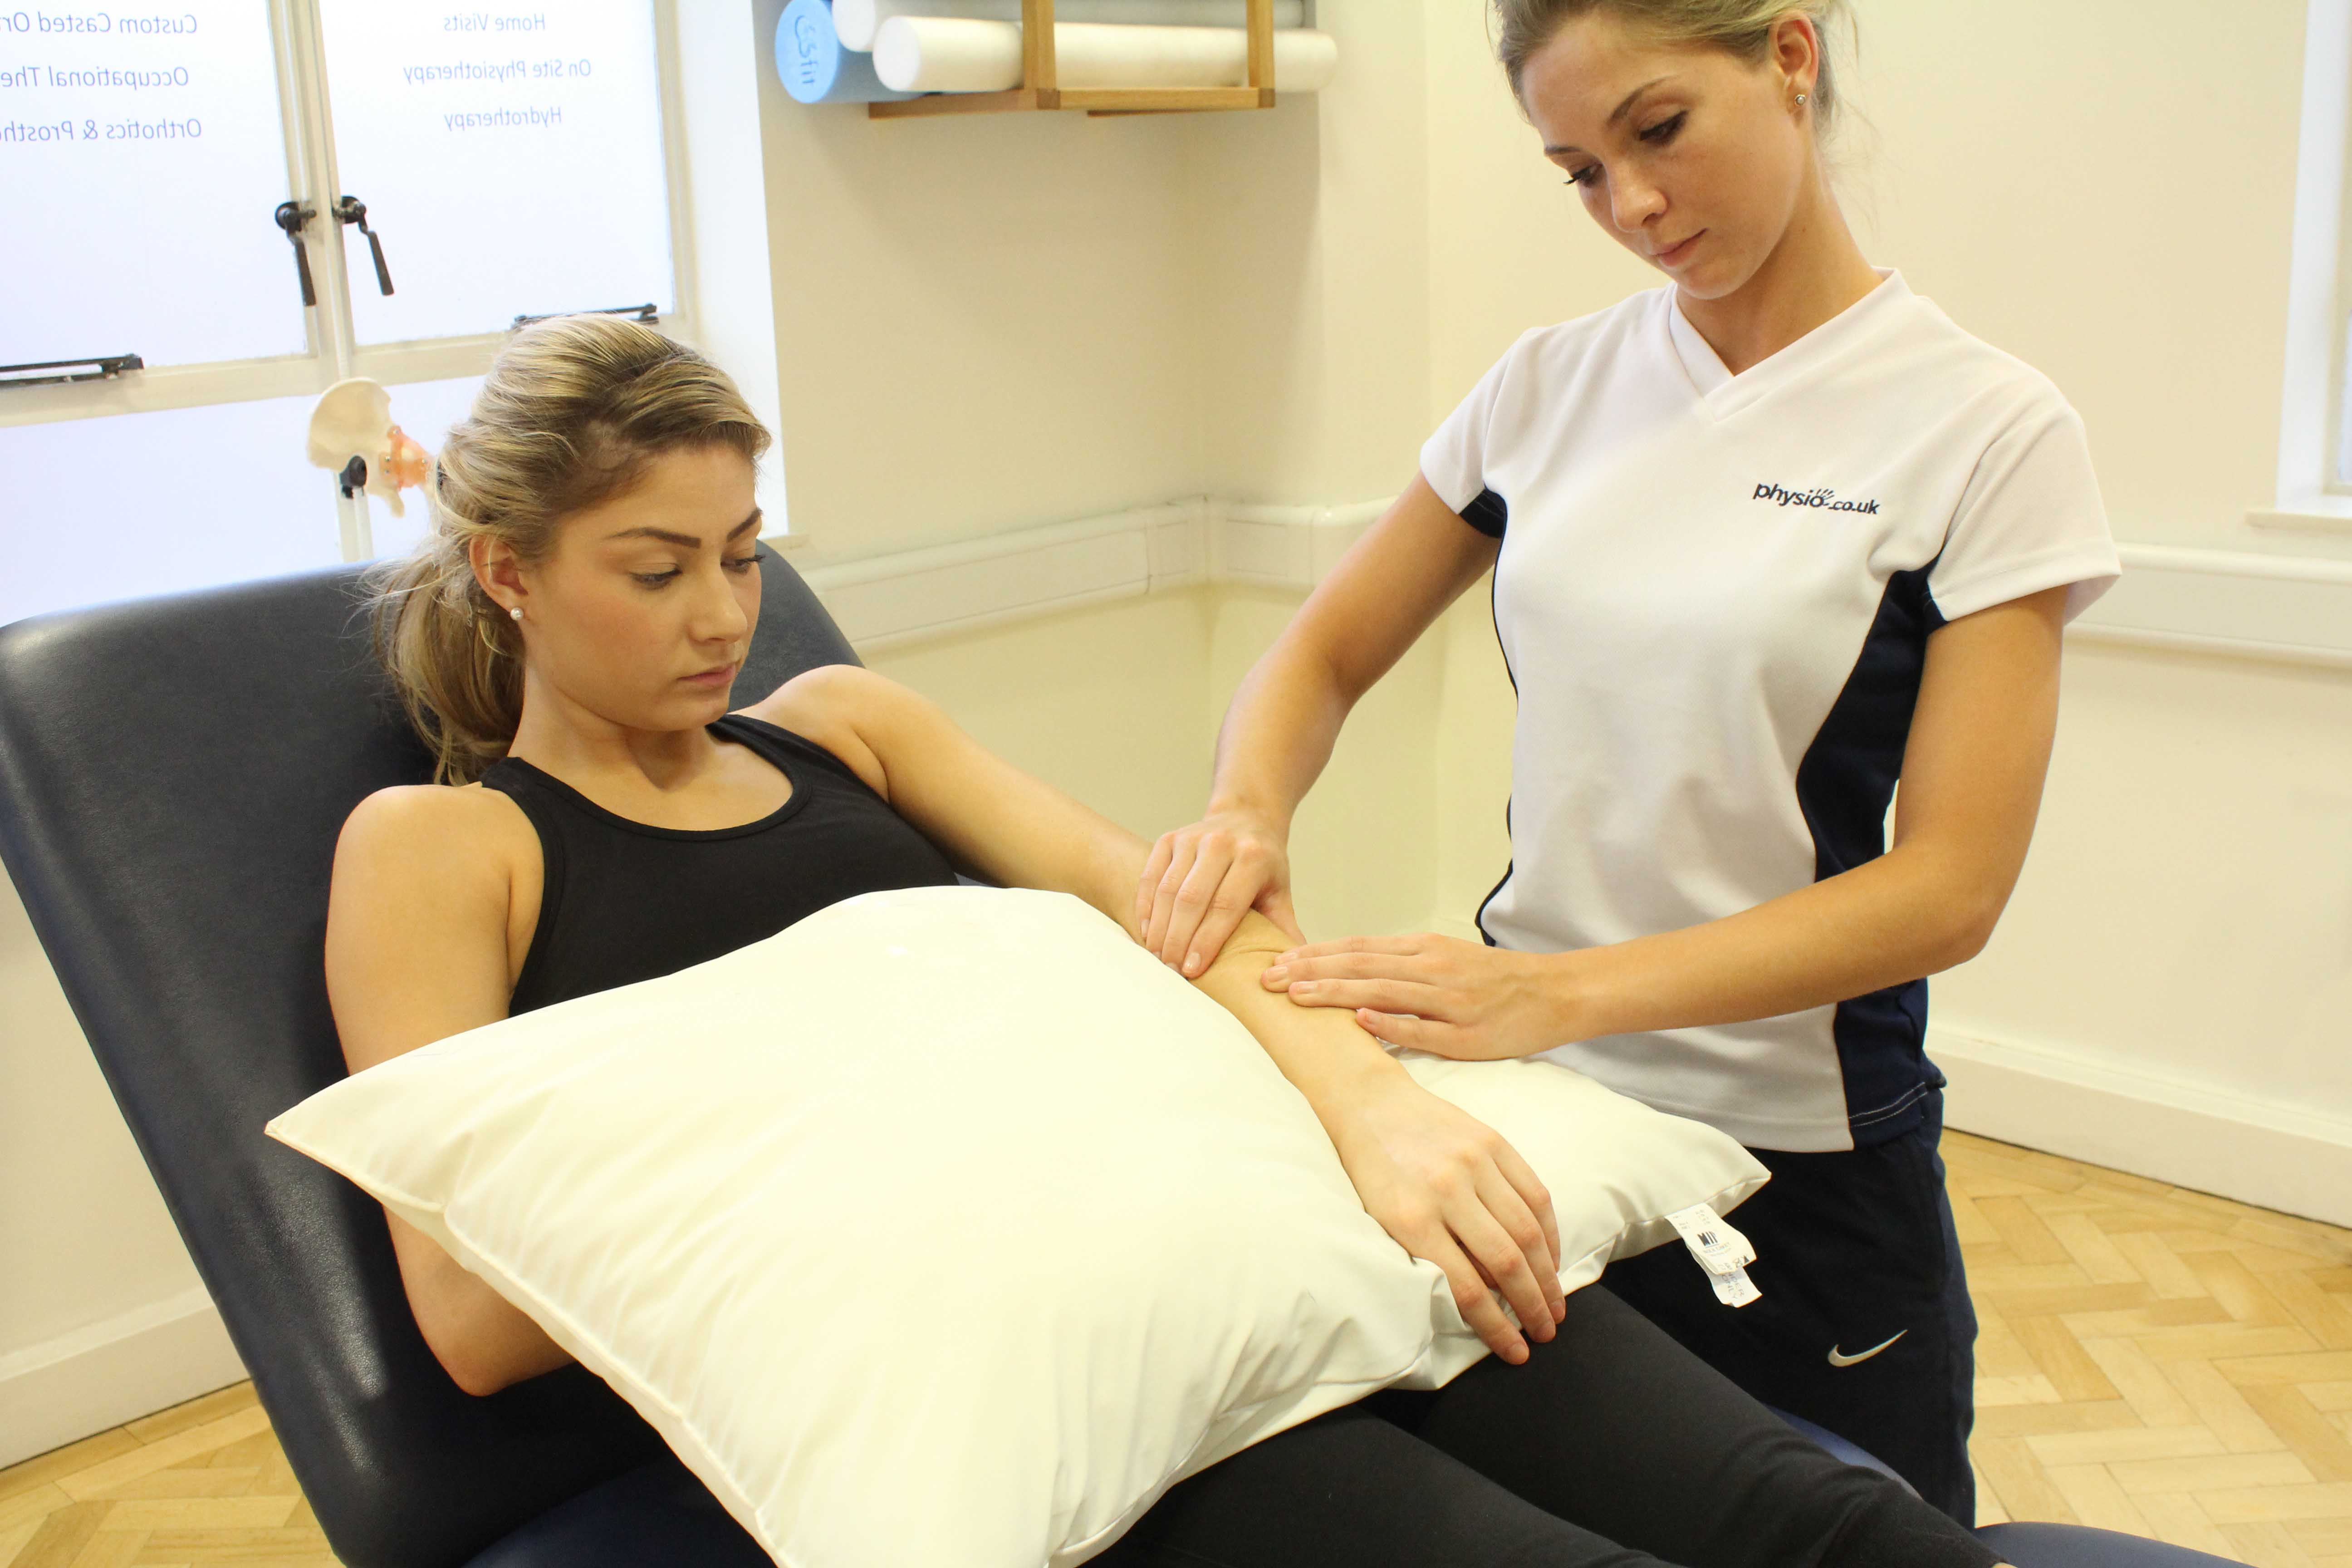 Soft tissue massage of the muscle and tendons in the forearm